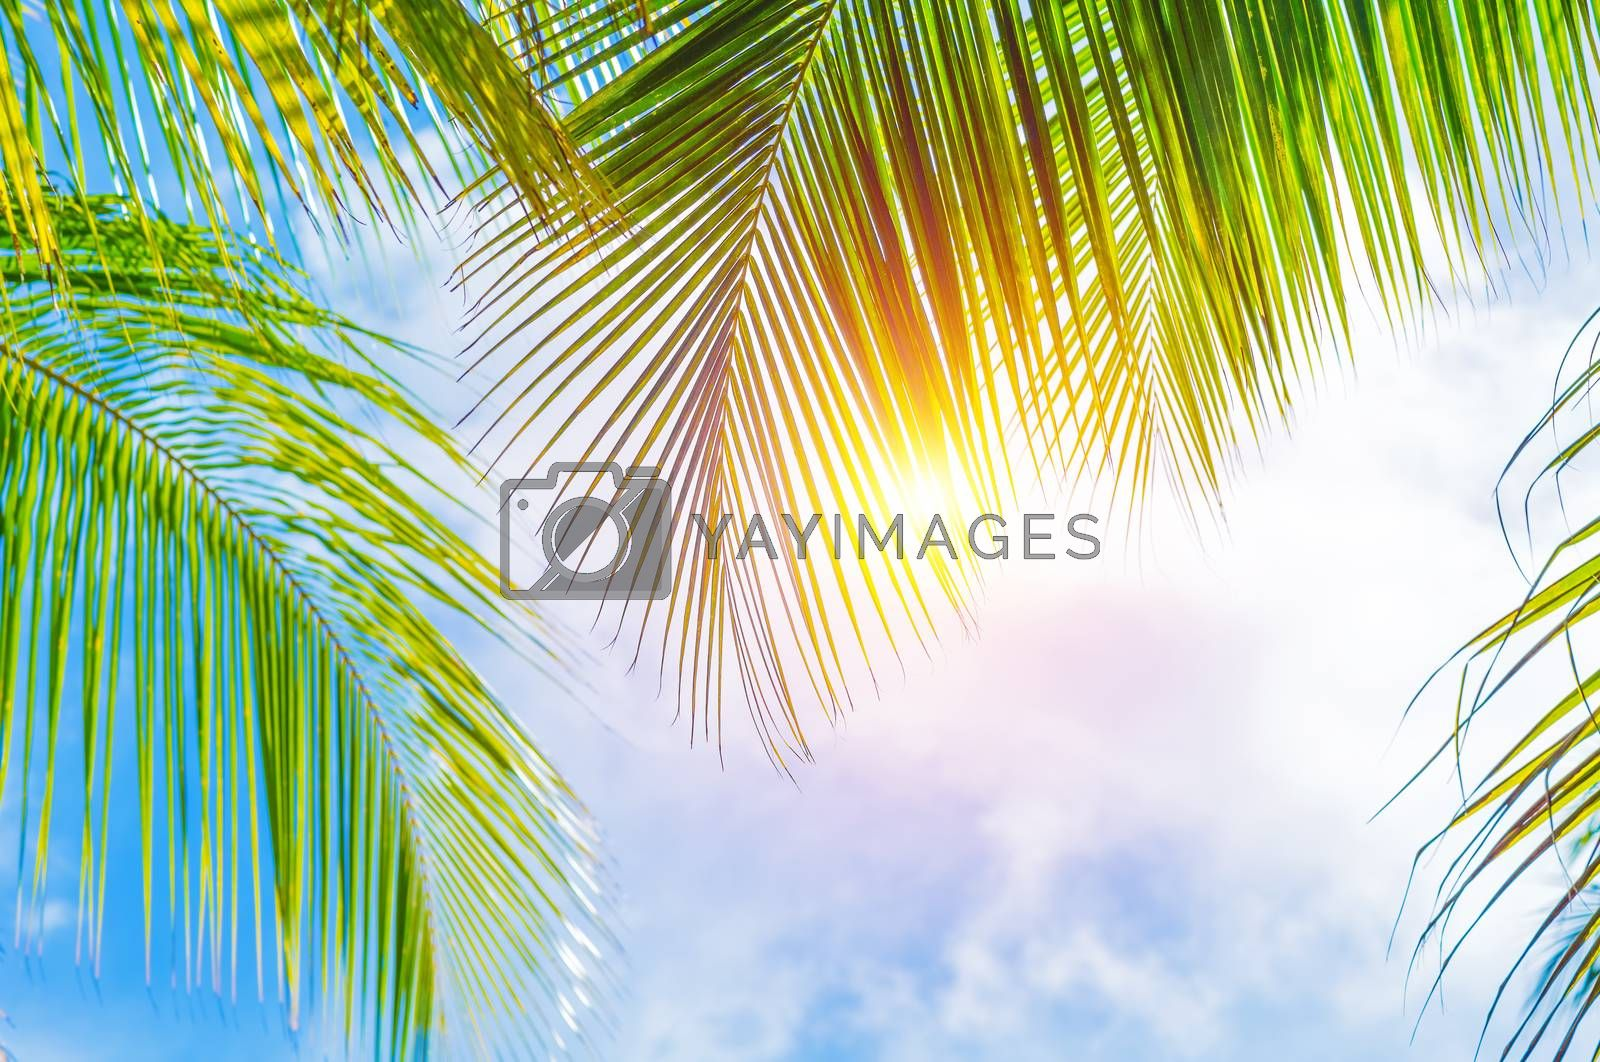 Royalty free image of Palm leaves border by Anna_Omelchenko